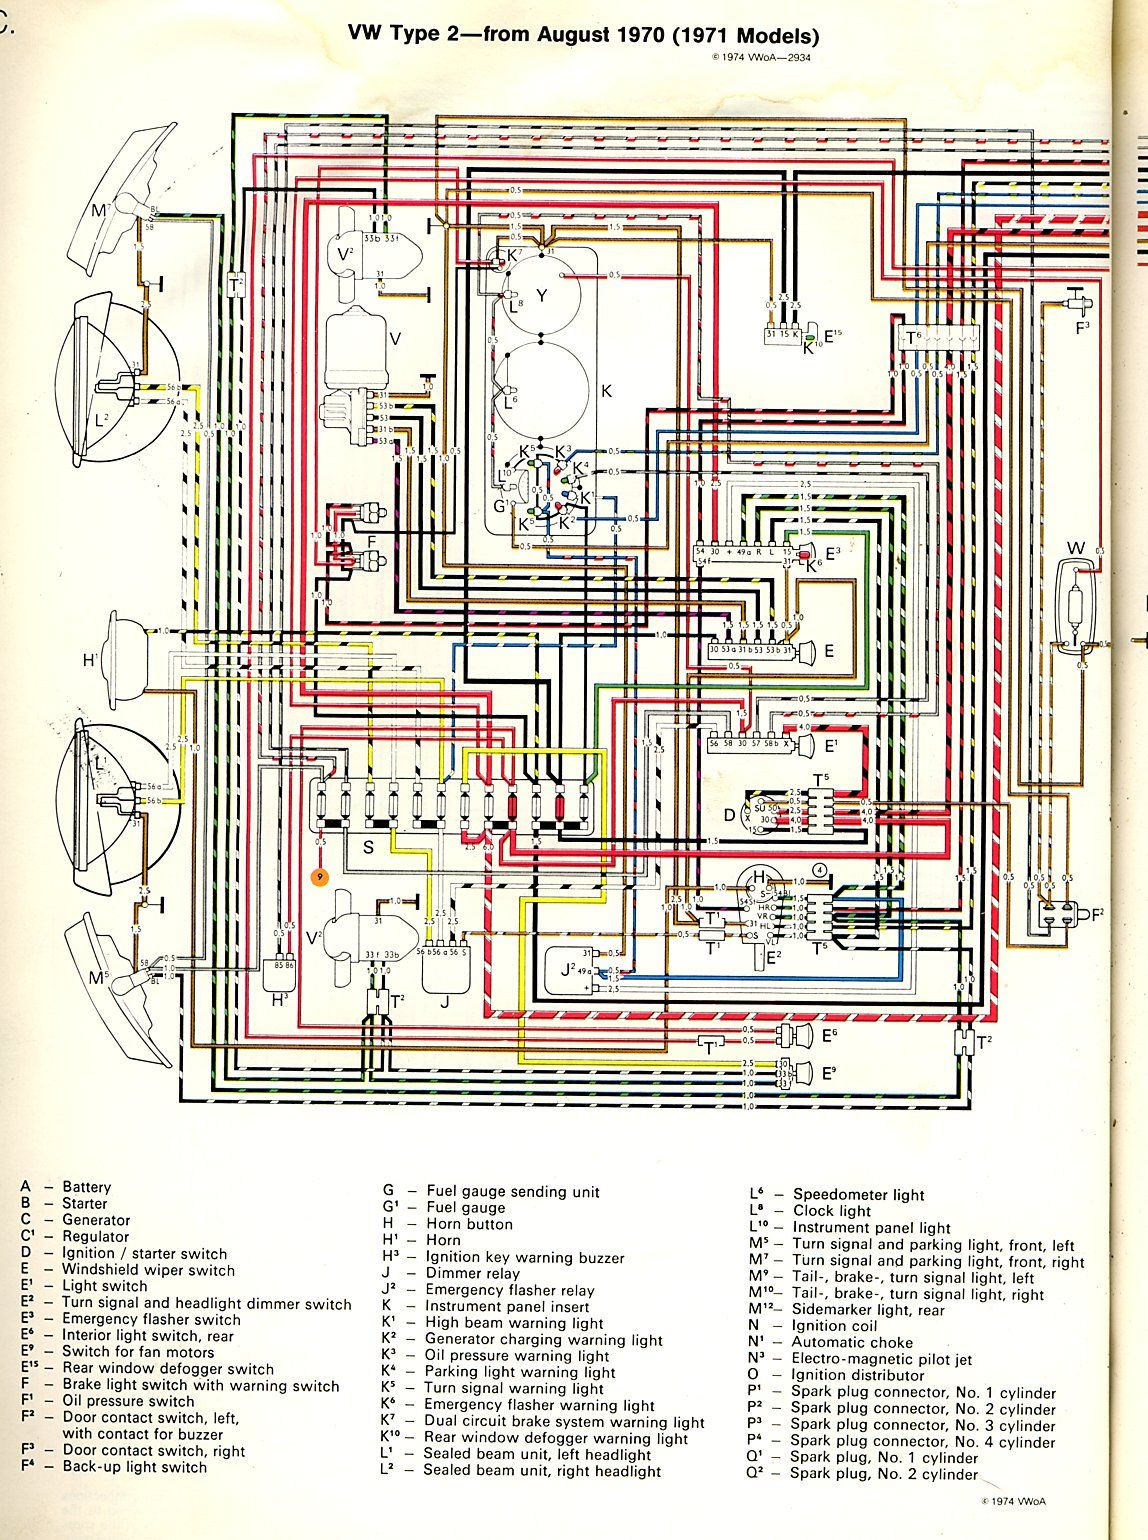 1971 bus wiring diagram thegoldenbug com stuff to try rh pinterest com 68 vw  bus wiring diagram vw bus wiring diagram